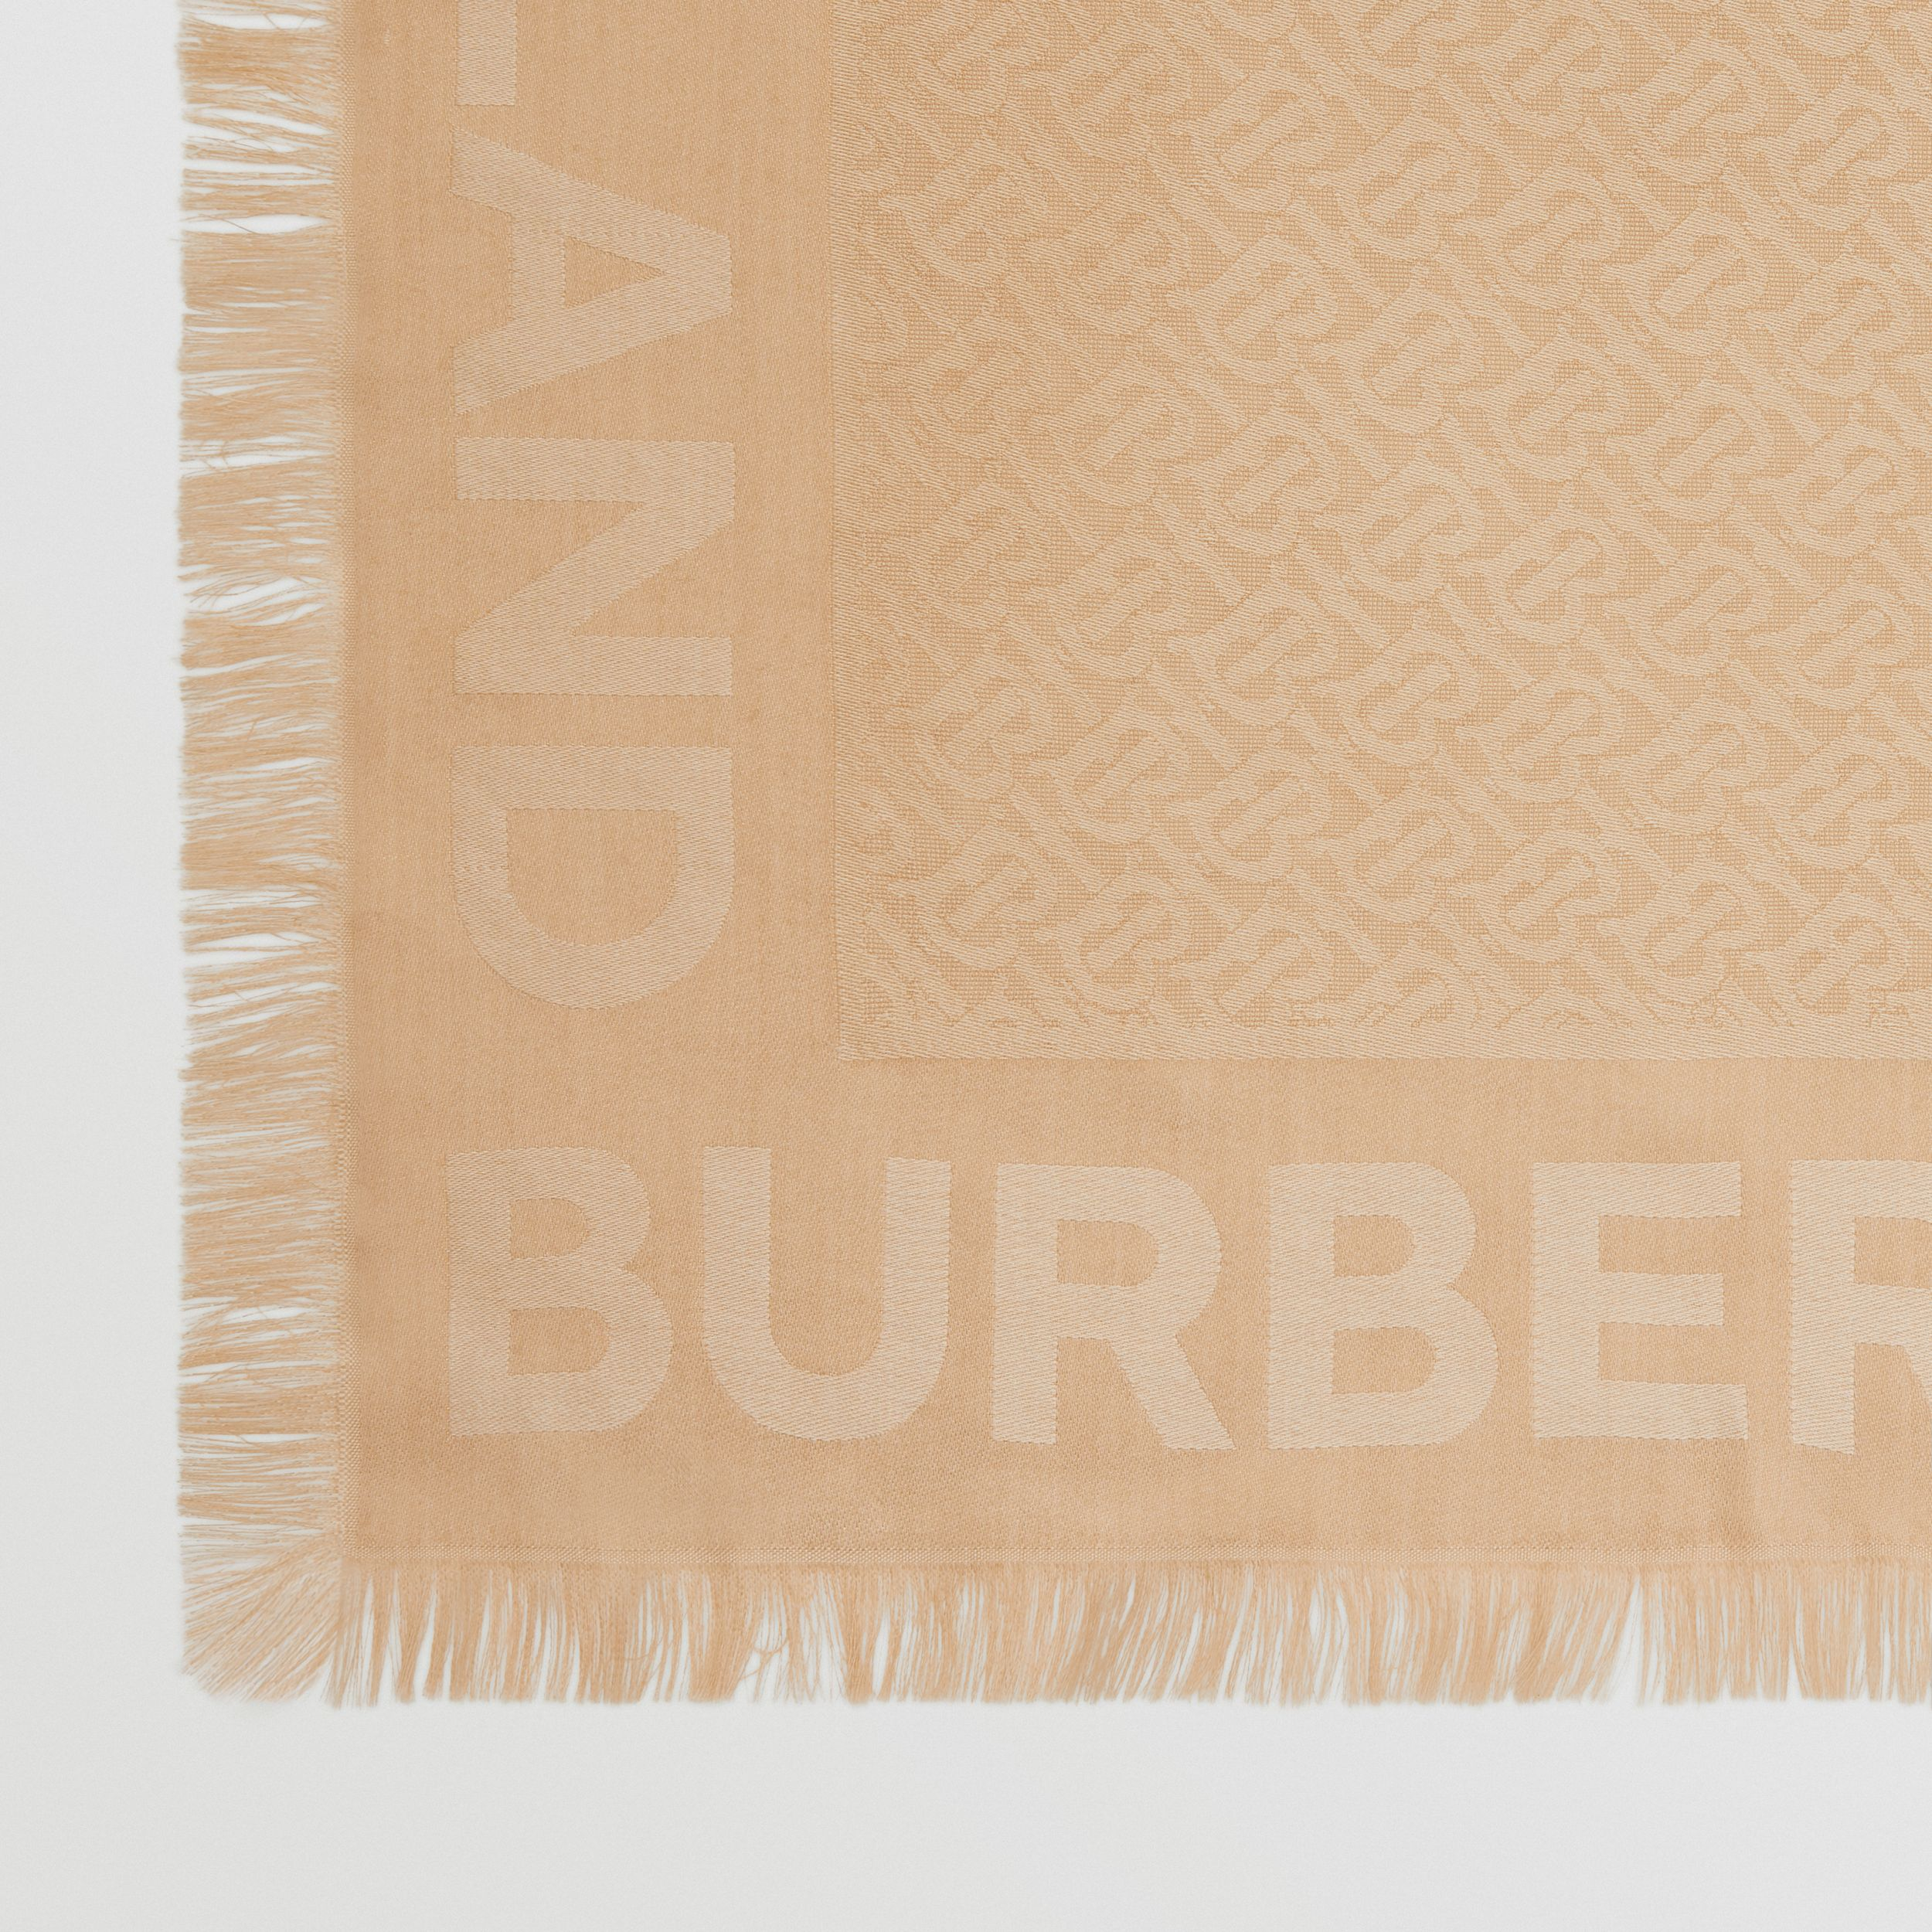 Monogram Silk Wool Jacquard Large Square Scarf in Honey | Burberry Singapore - 2